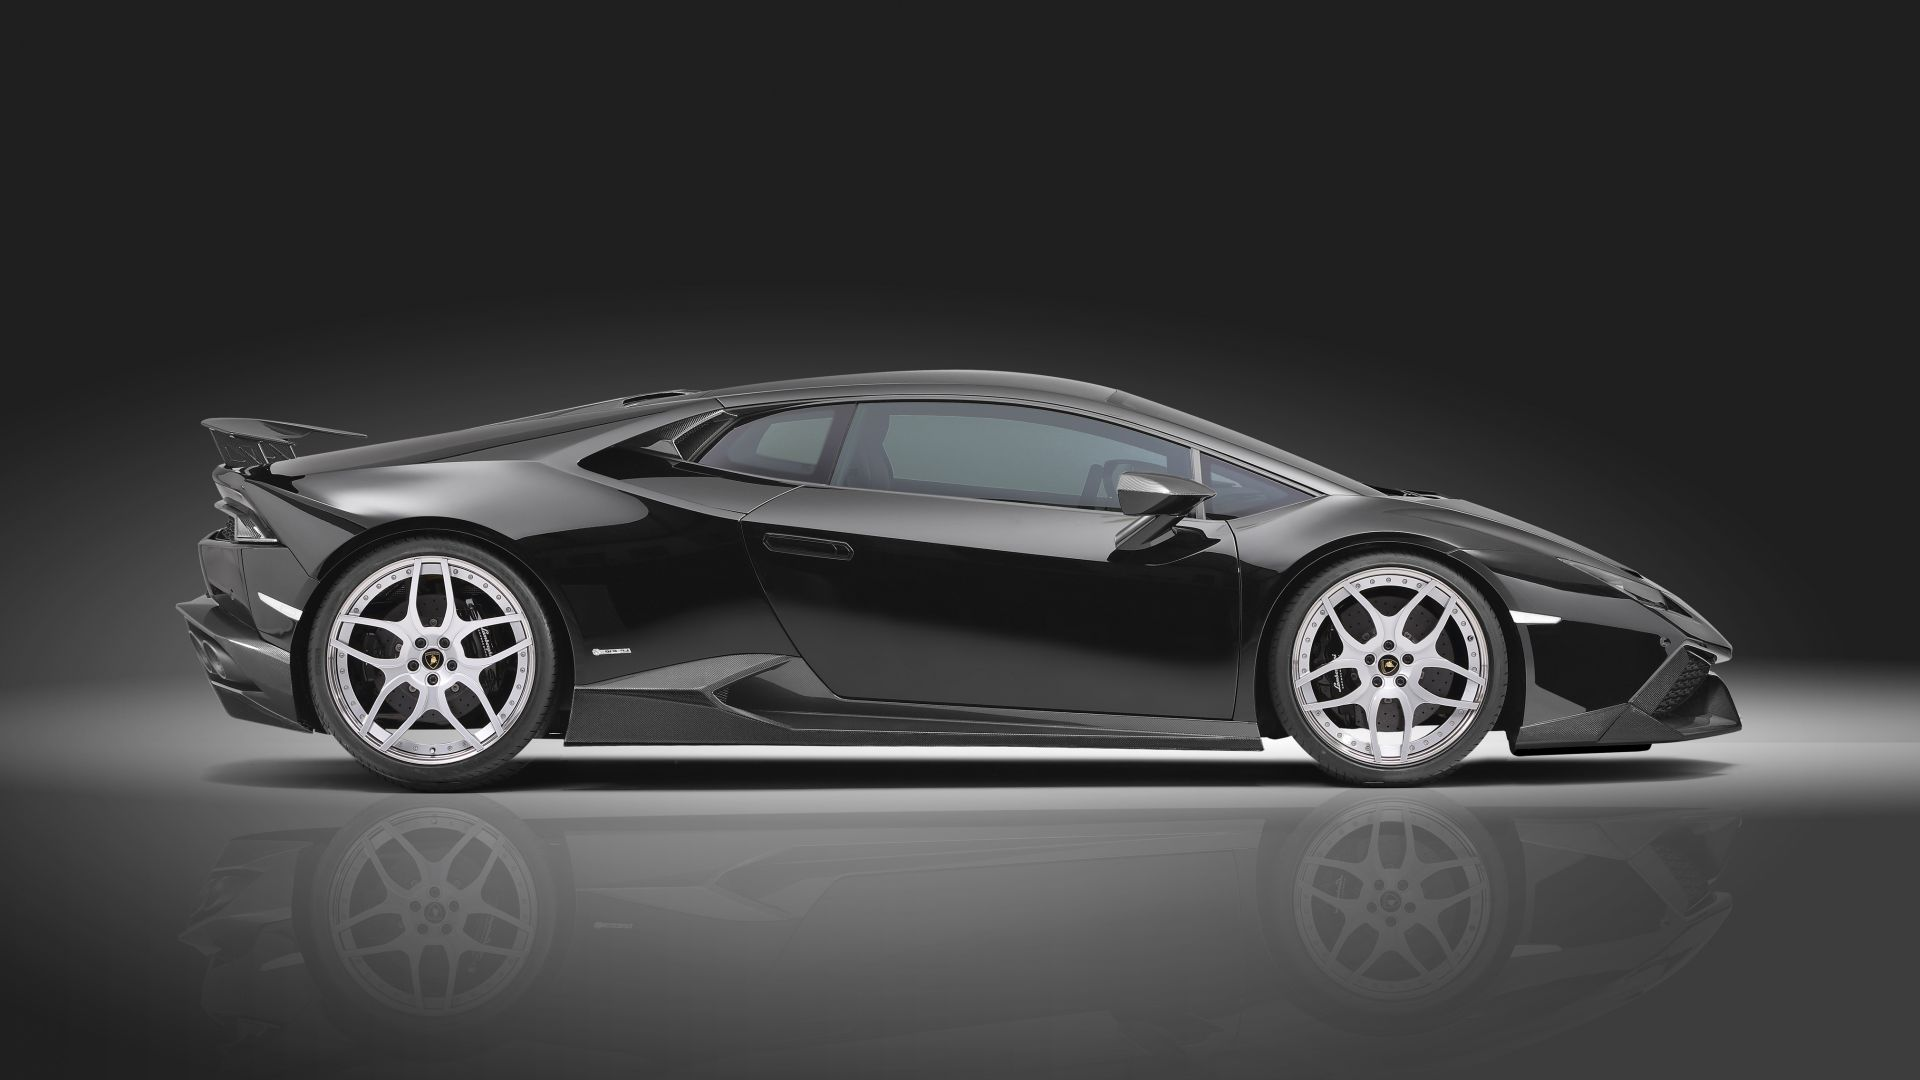 wallpaper lamborghini huracan lp610 4 supercar black. Black Bedroom Furniture Sets. Home Design Ideas